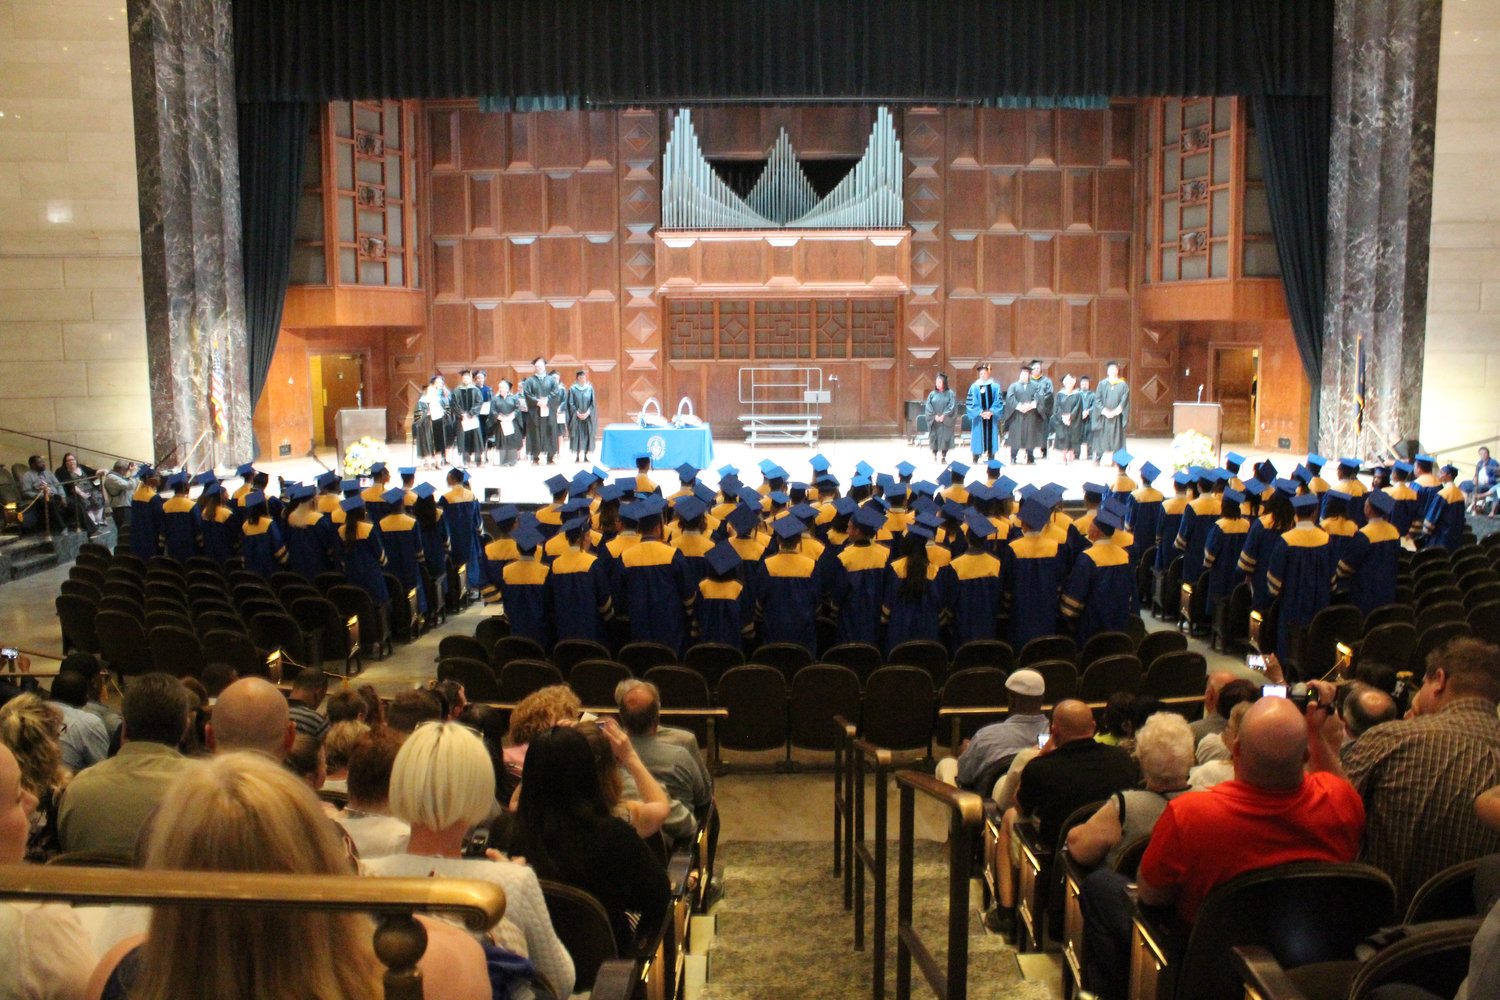 MAHS seniors had their graduation in the Forum in Harrisburg on June 4.